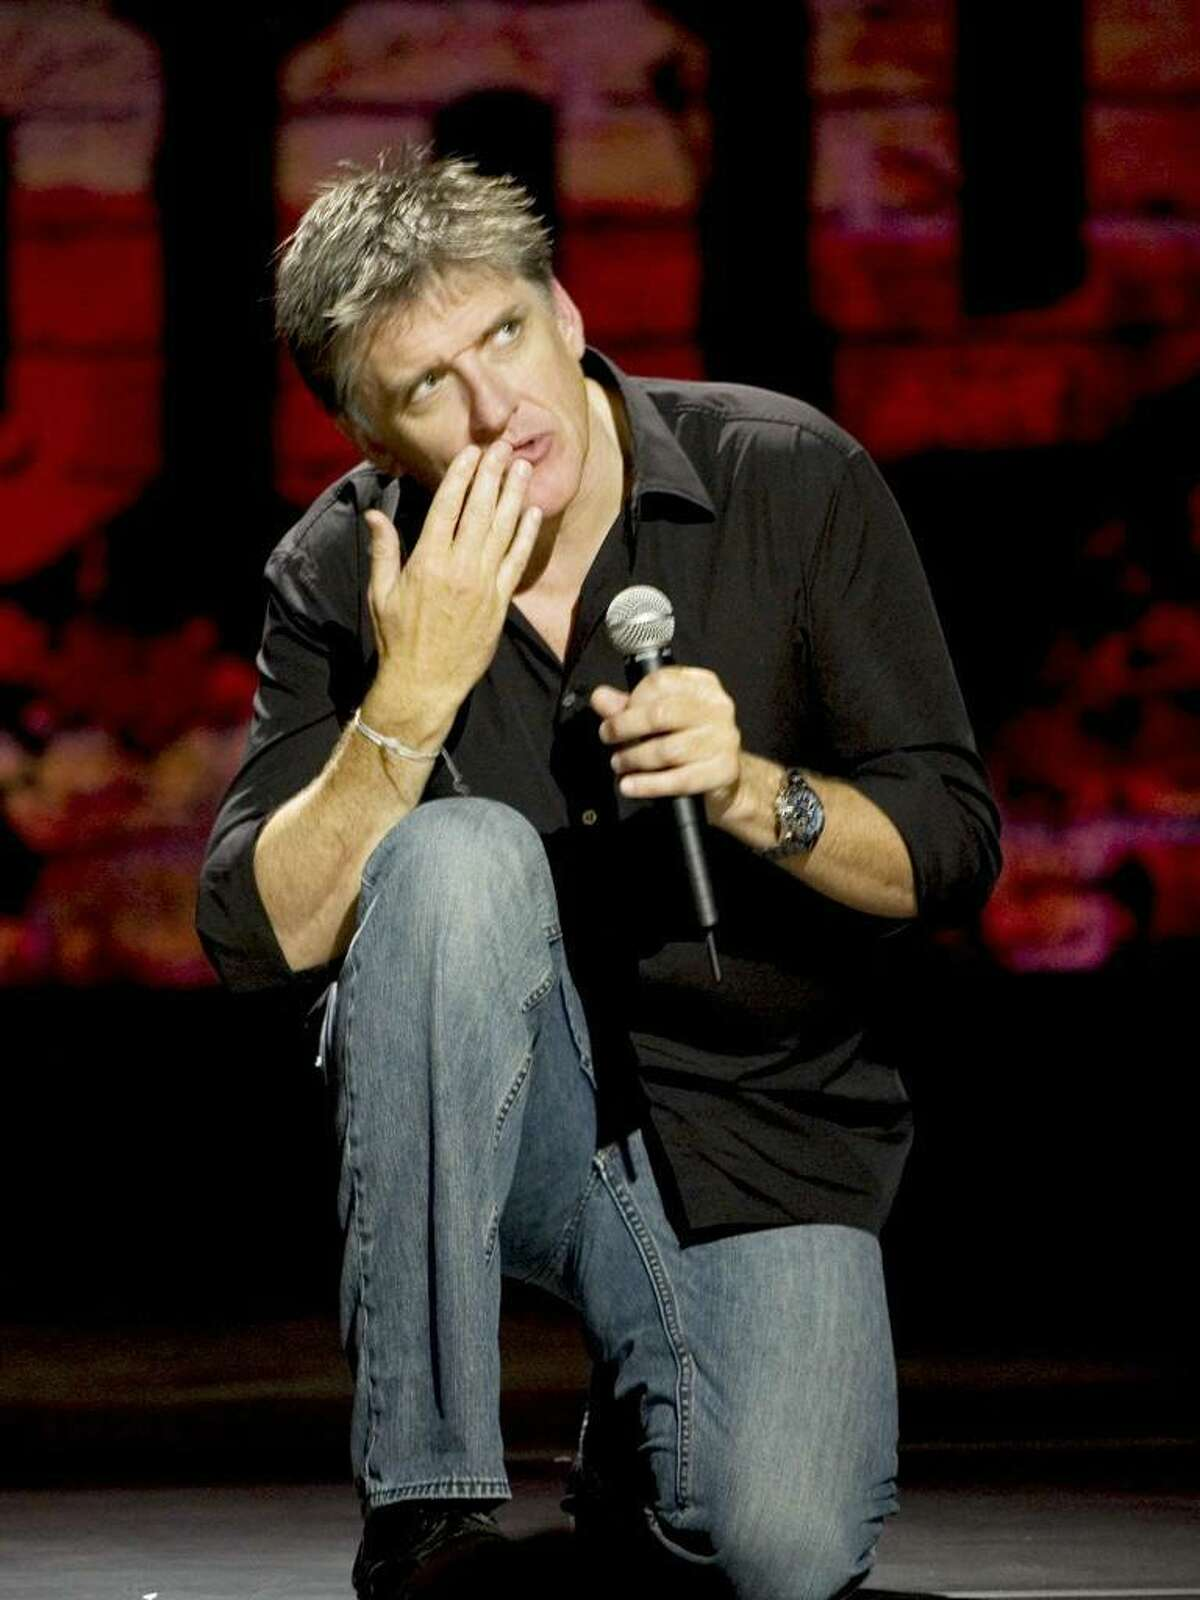 Craig Ferguson brings his stand-up performance to the Palace Theatre Wednesday.